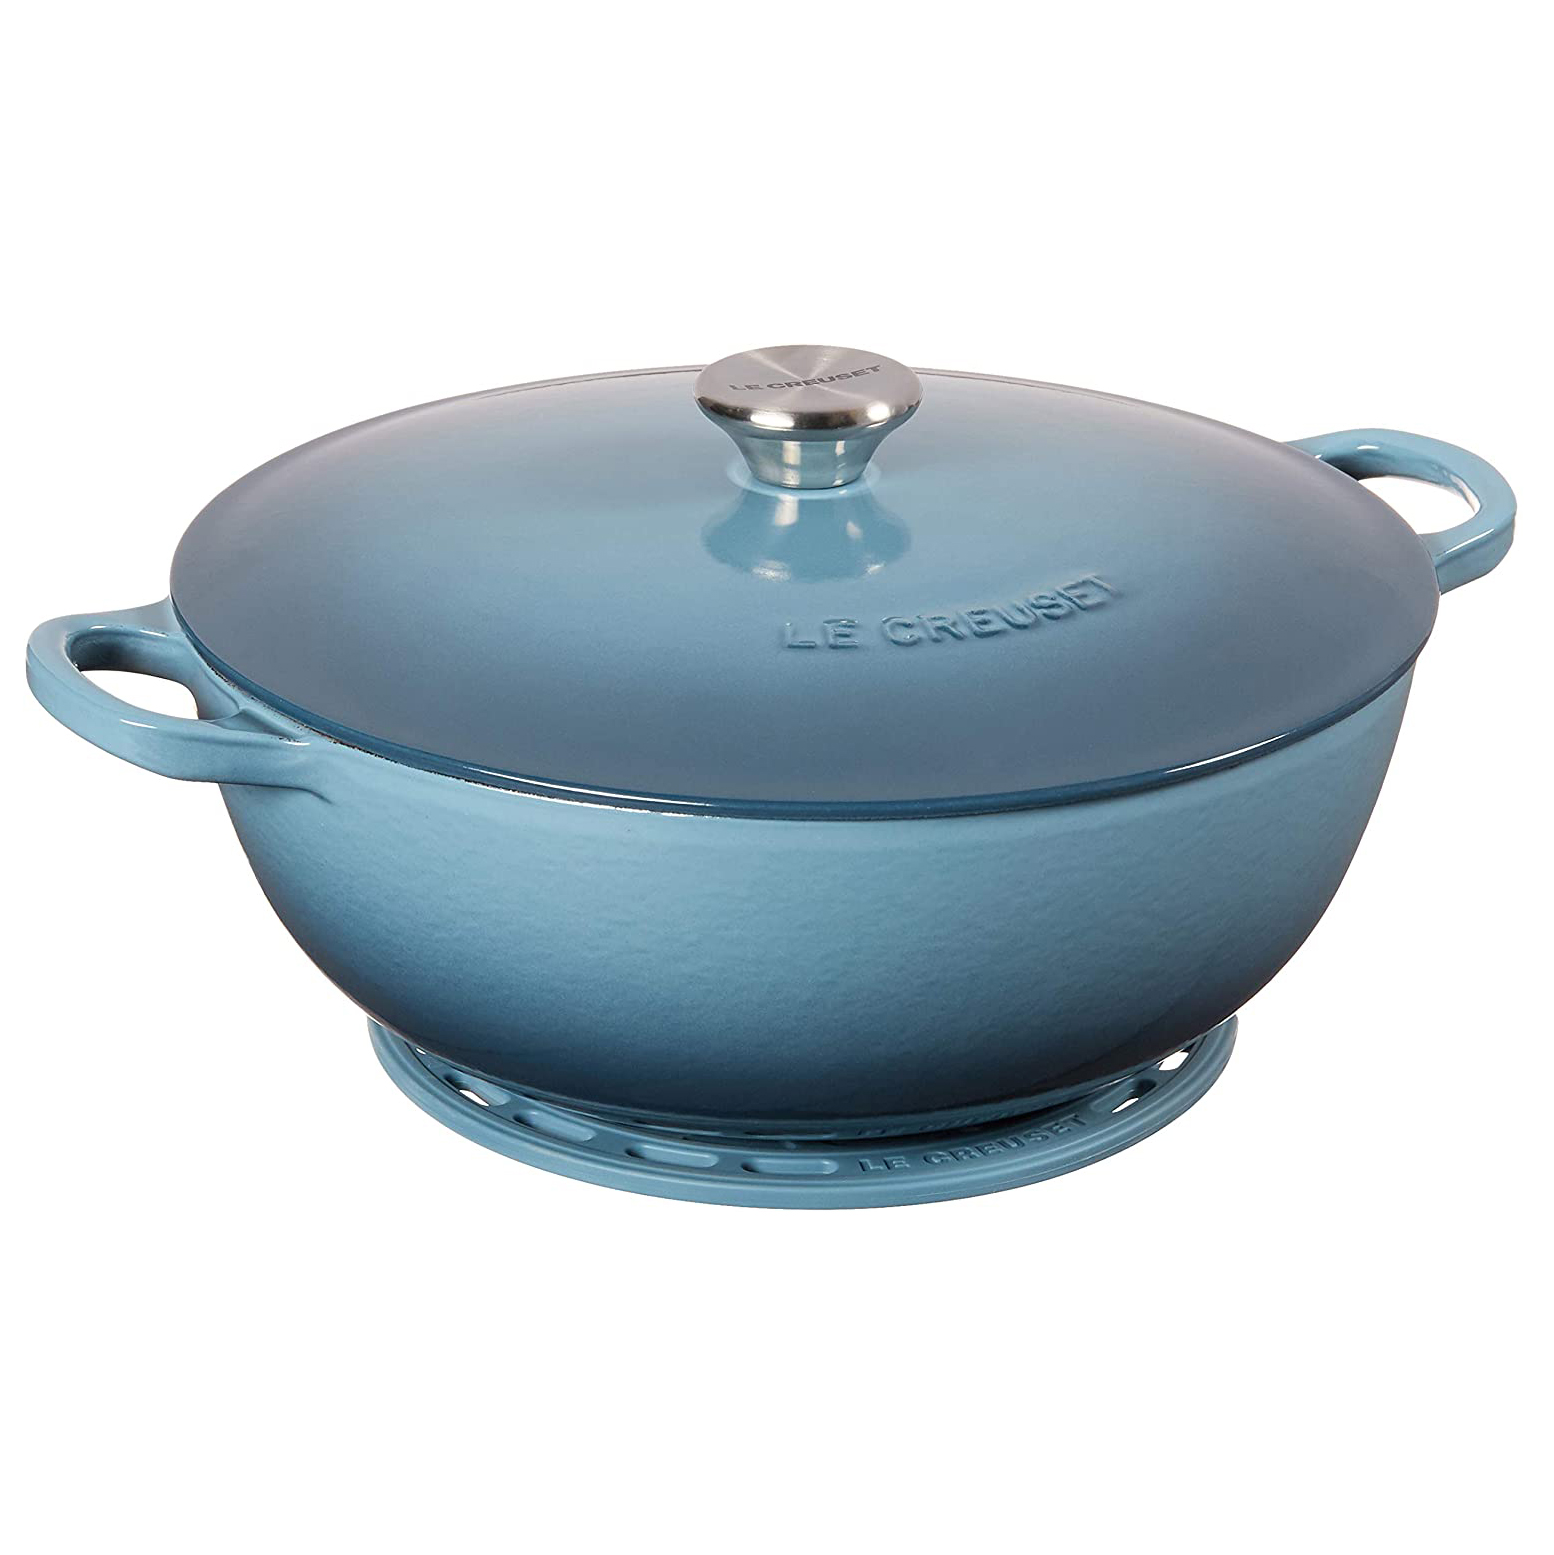 Le Creuset Enameled Cast Iron Curved Round Chef's Oven with Silicone French Trivet, 4.5 qt., Marine